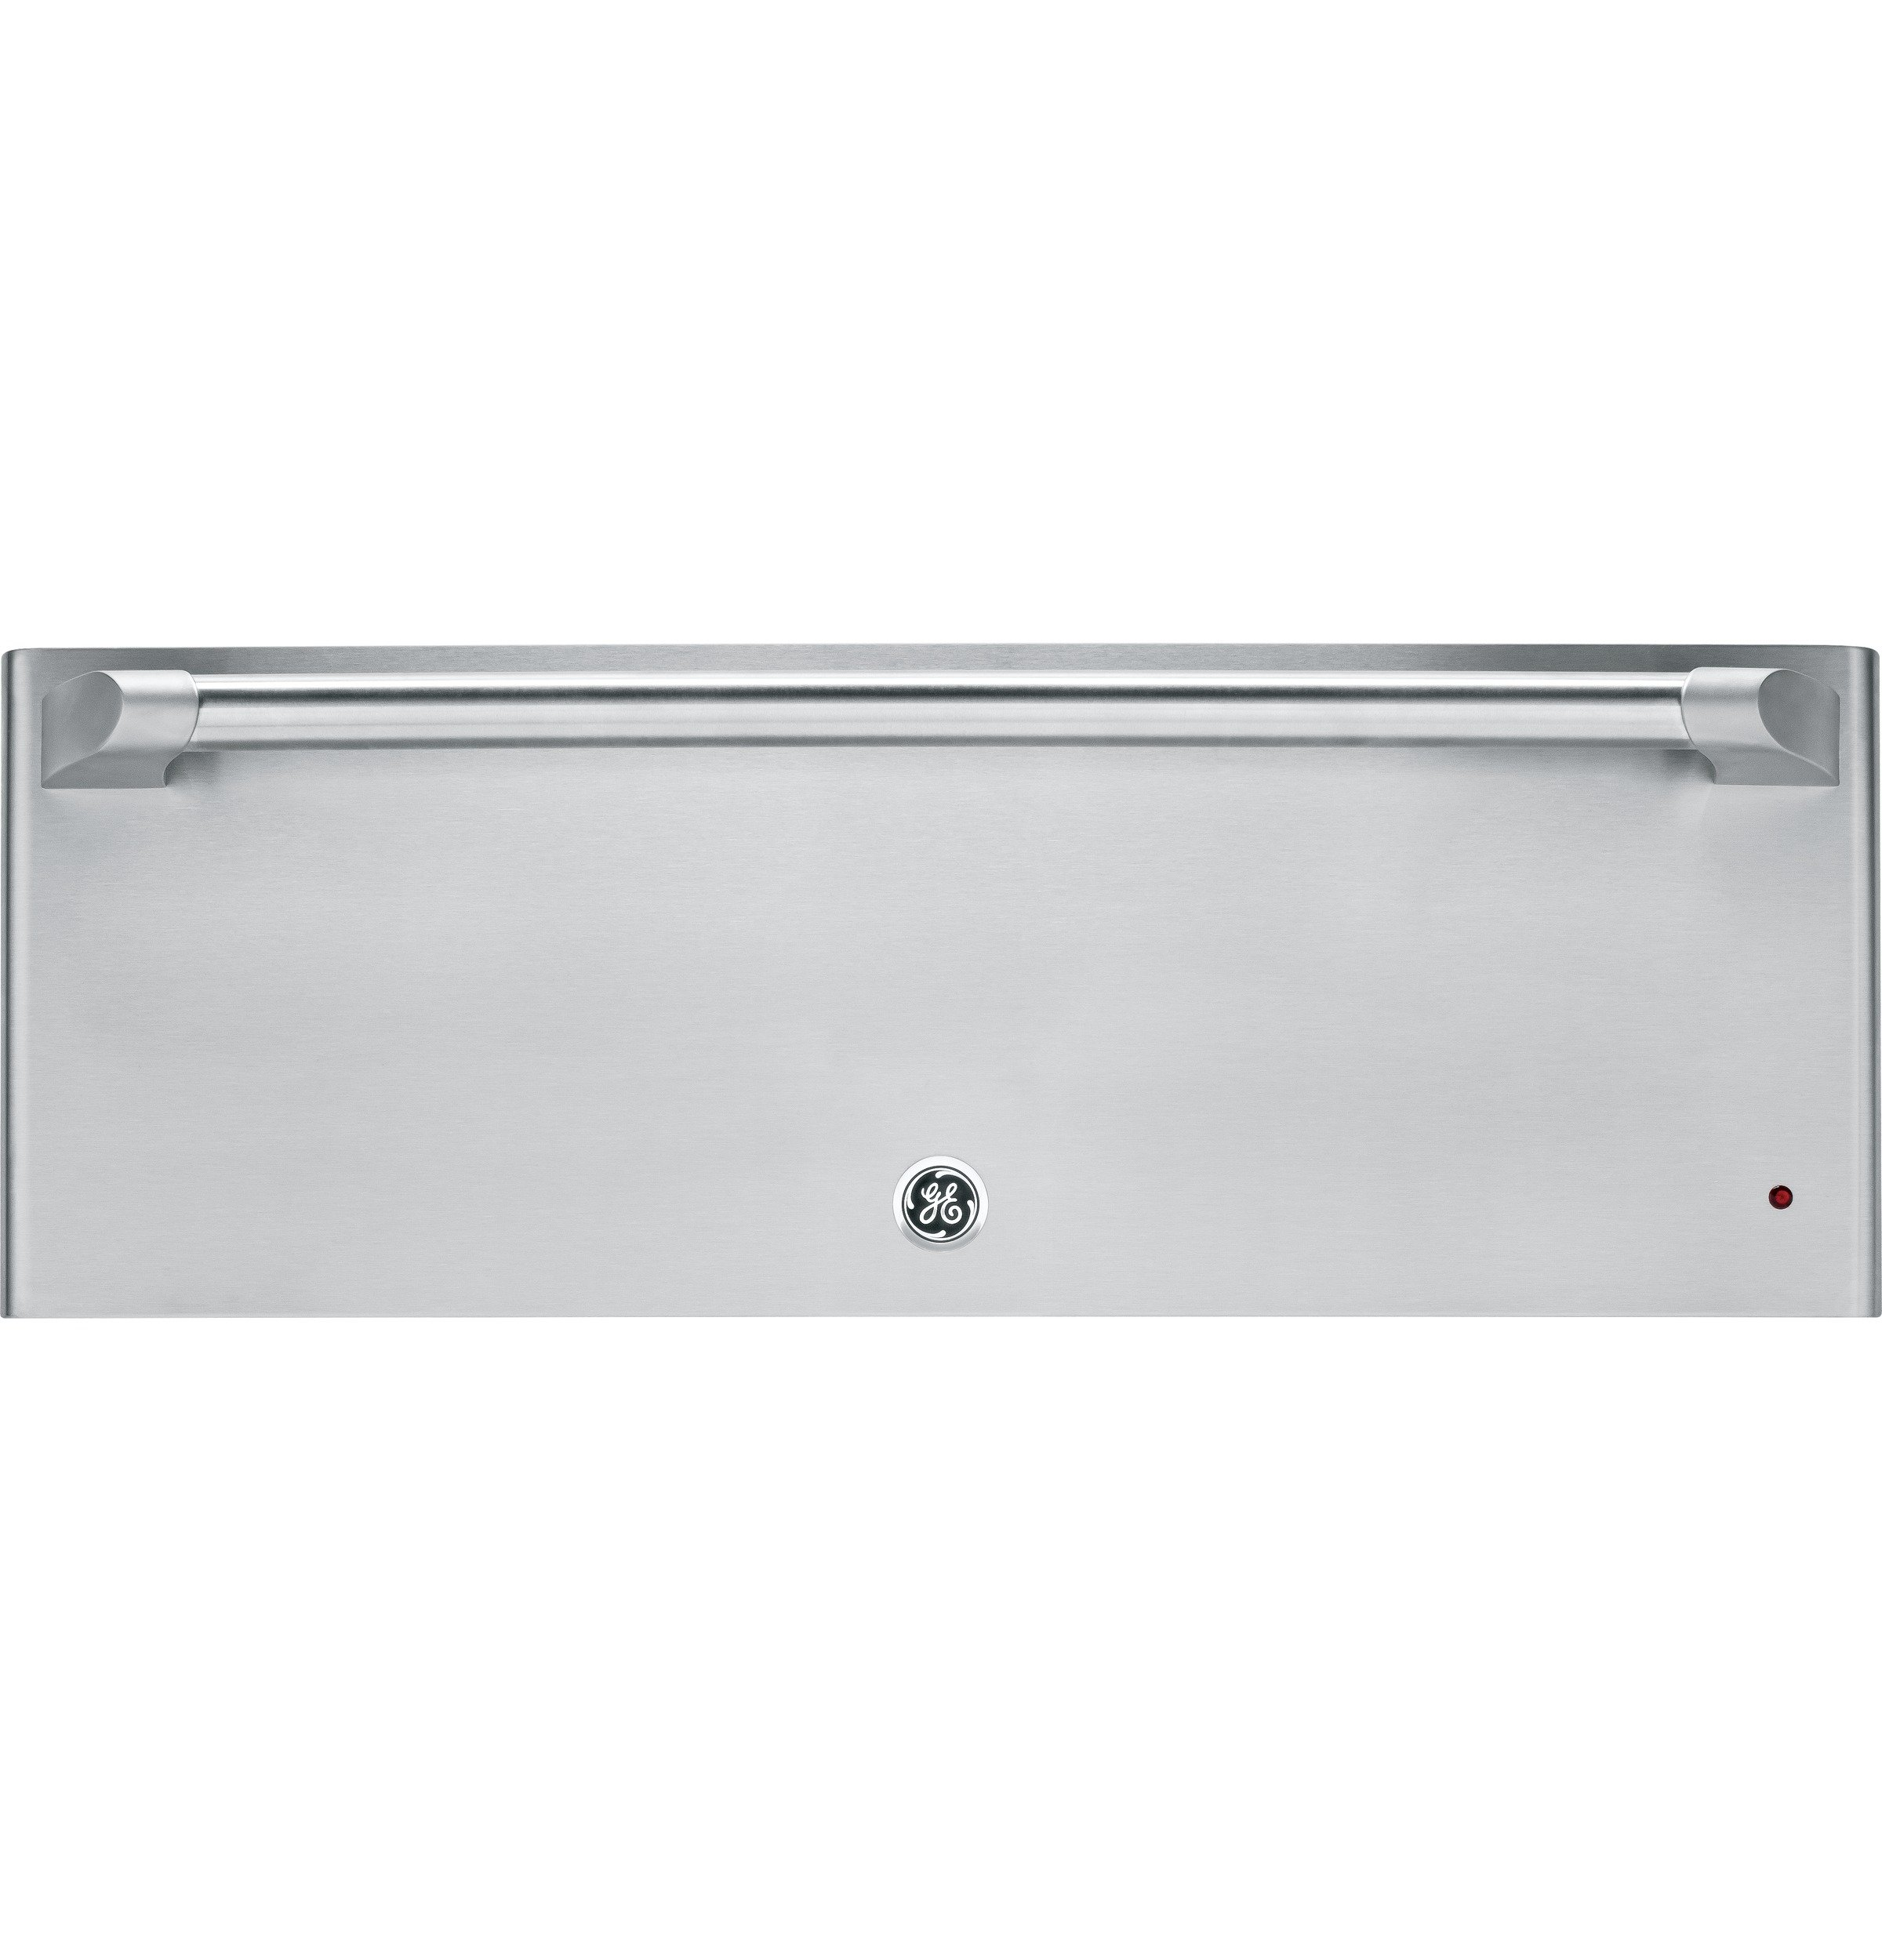 "GE CW9000SDSS Cafe 30"" Stainless Steel Electric"